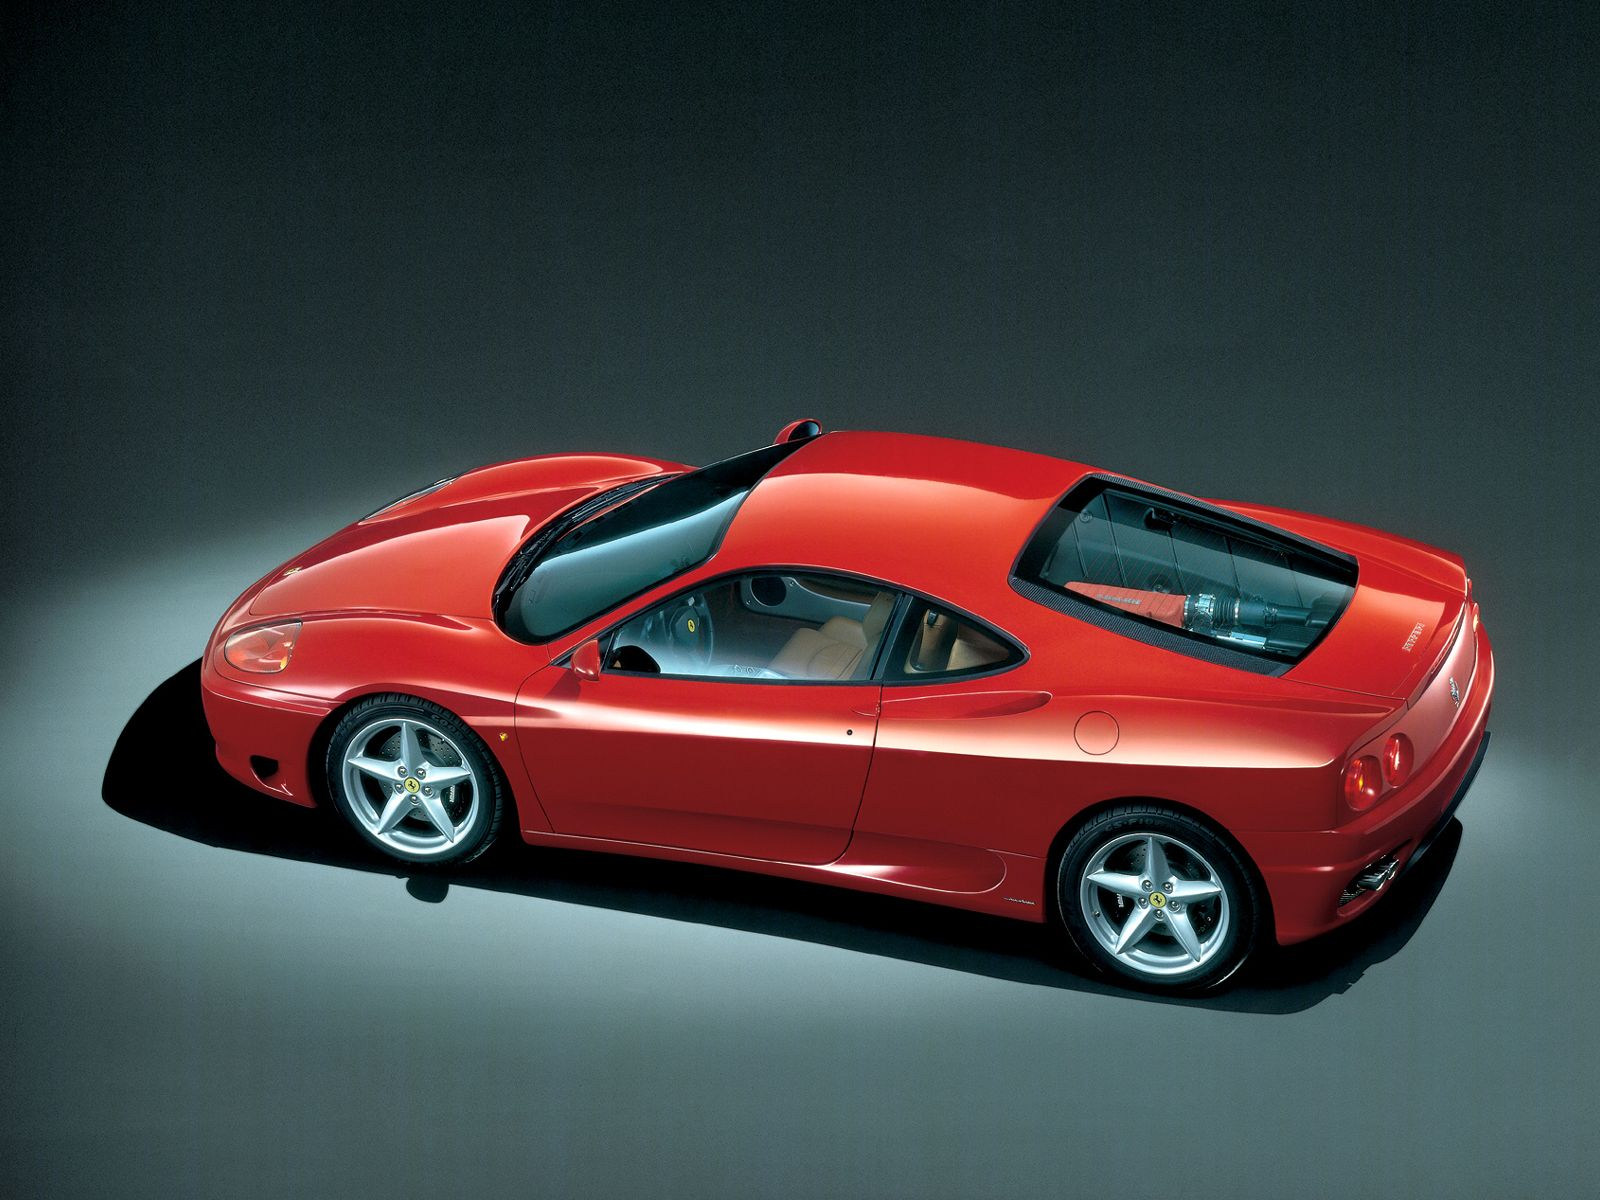 ferrari 360 modena 1999 2000 2001 2002 2003 2004. Black Bedroom Furniture Sets. Home Design Ideas